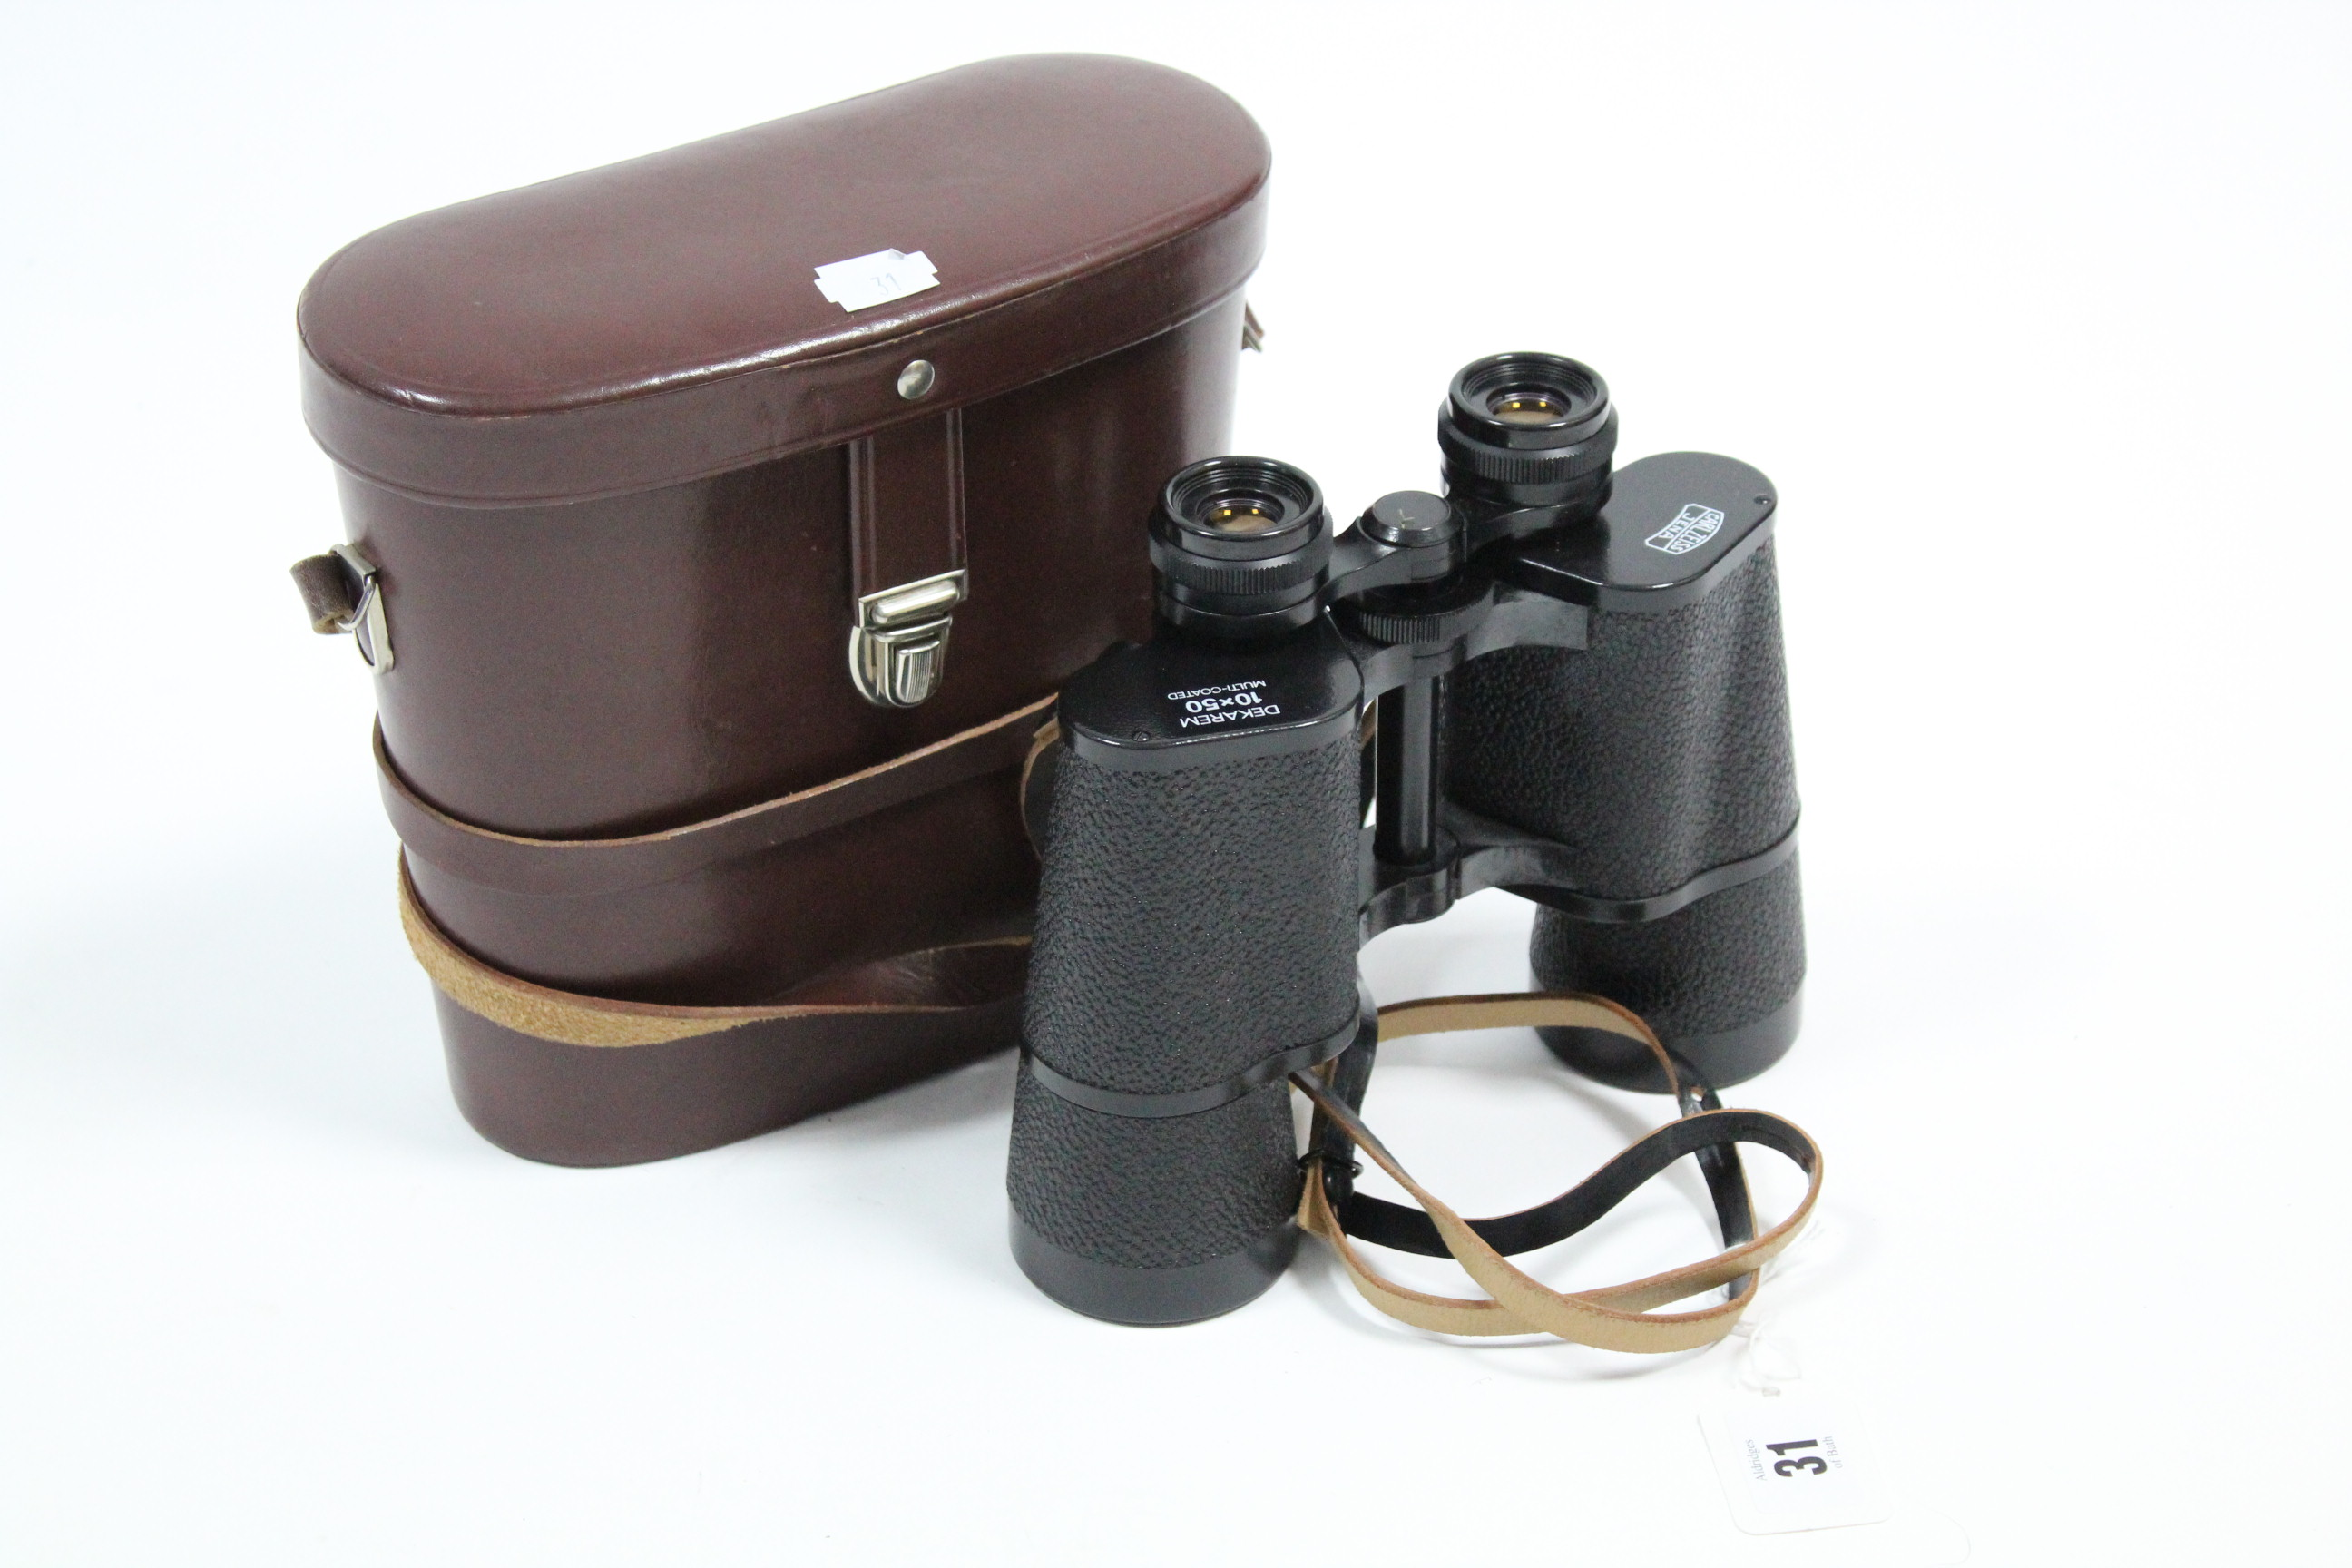 Lot 31 - A pair of Carl Zeiss Jena Dekarem 10 x 50mm binoculars with leather case.